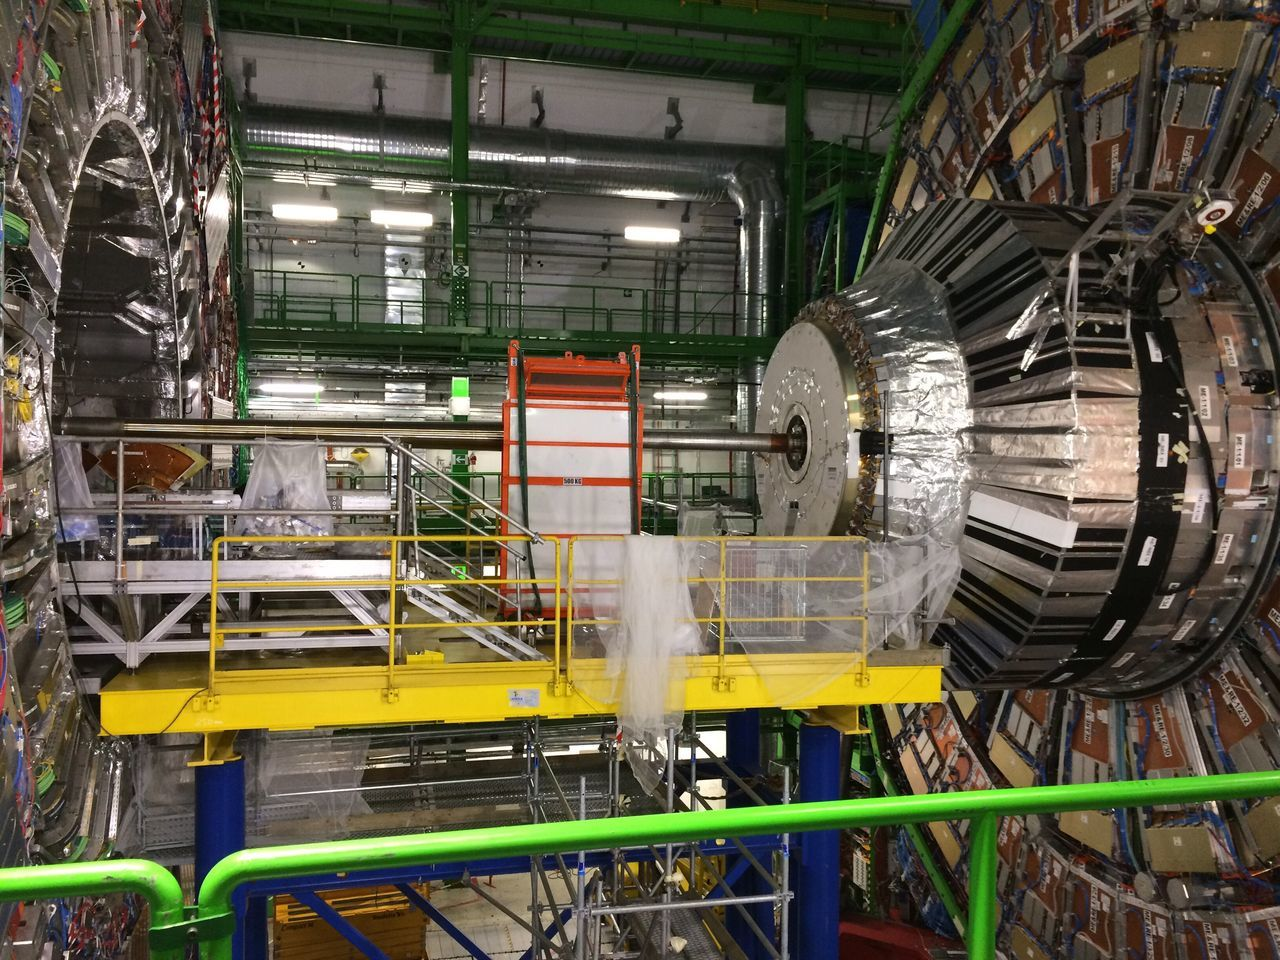 Factory Industry Machinery Indoors  No People Day Manufacturing Equipment Cern Technology Modern Indoors  Machinery Architecture